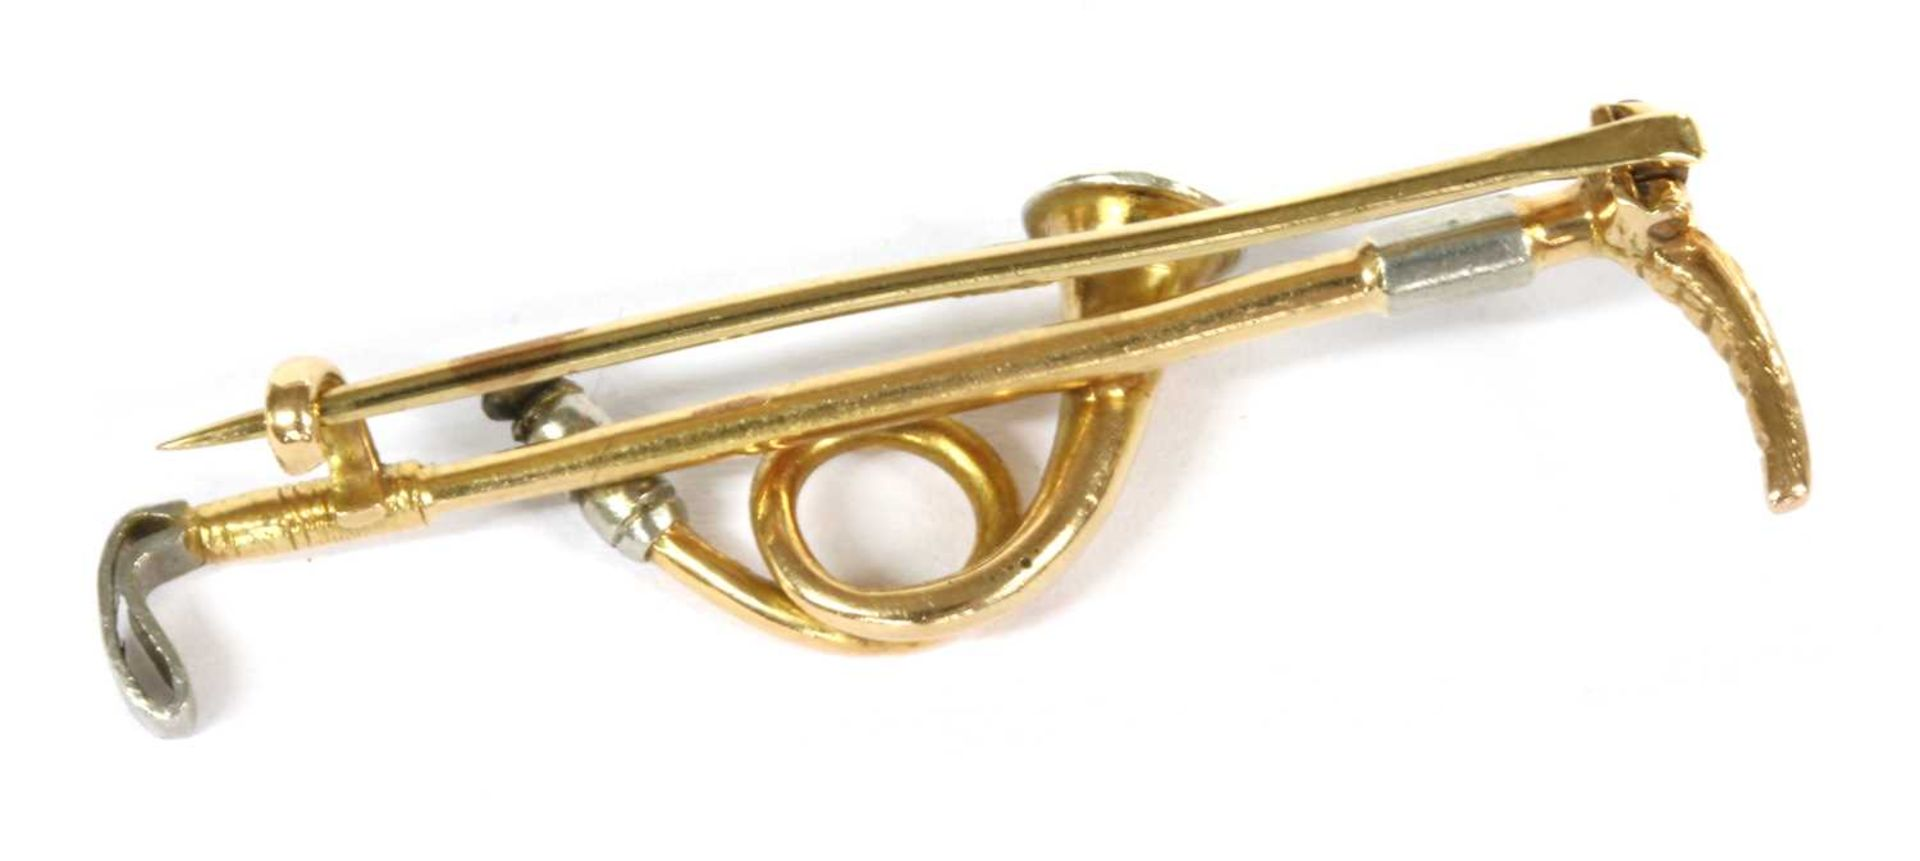 A gold and platinum hunting horn brooch, - Image 2 of 2